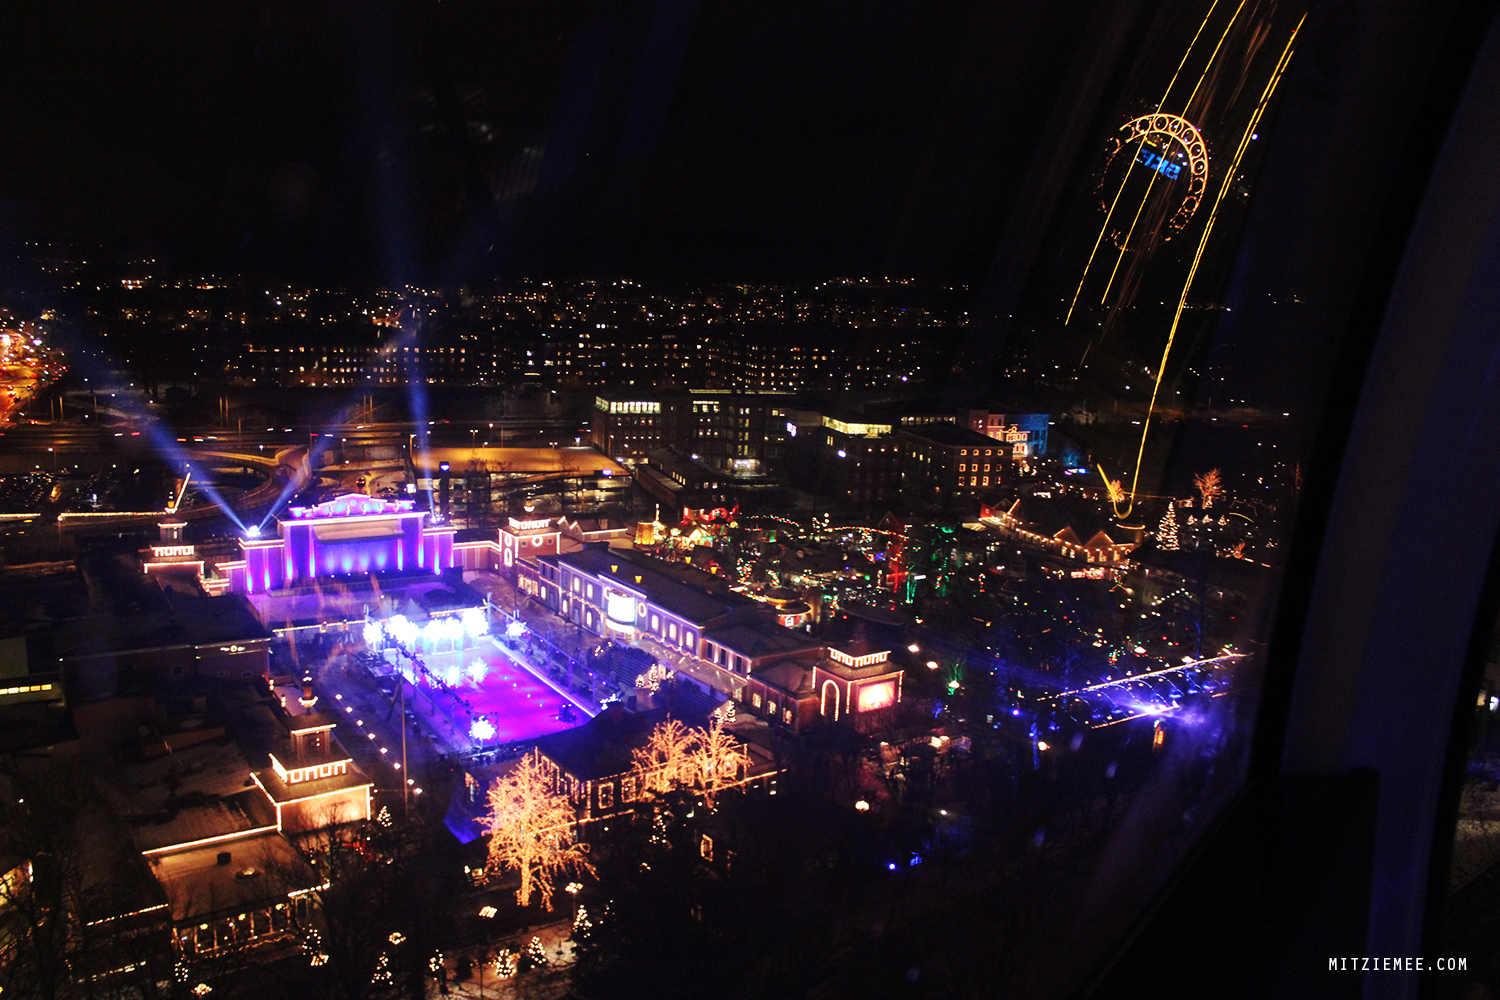 Christmas at Liseberg, Gothenburg